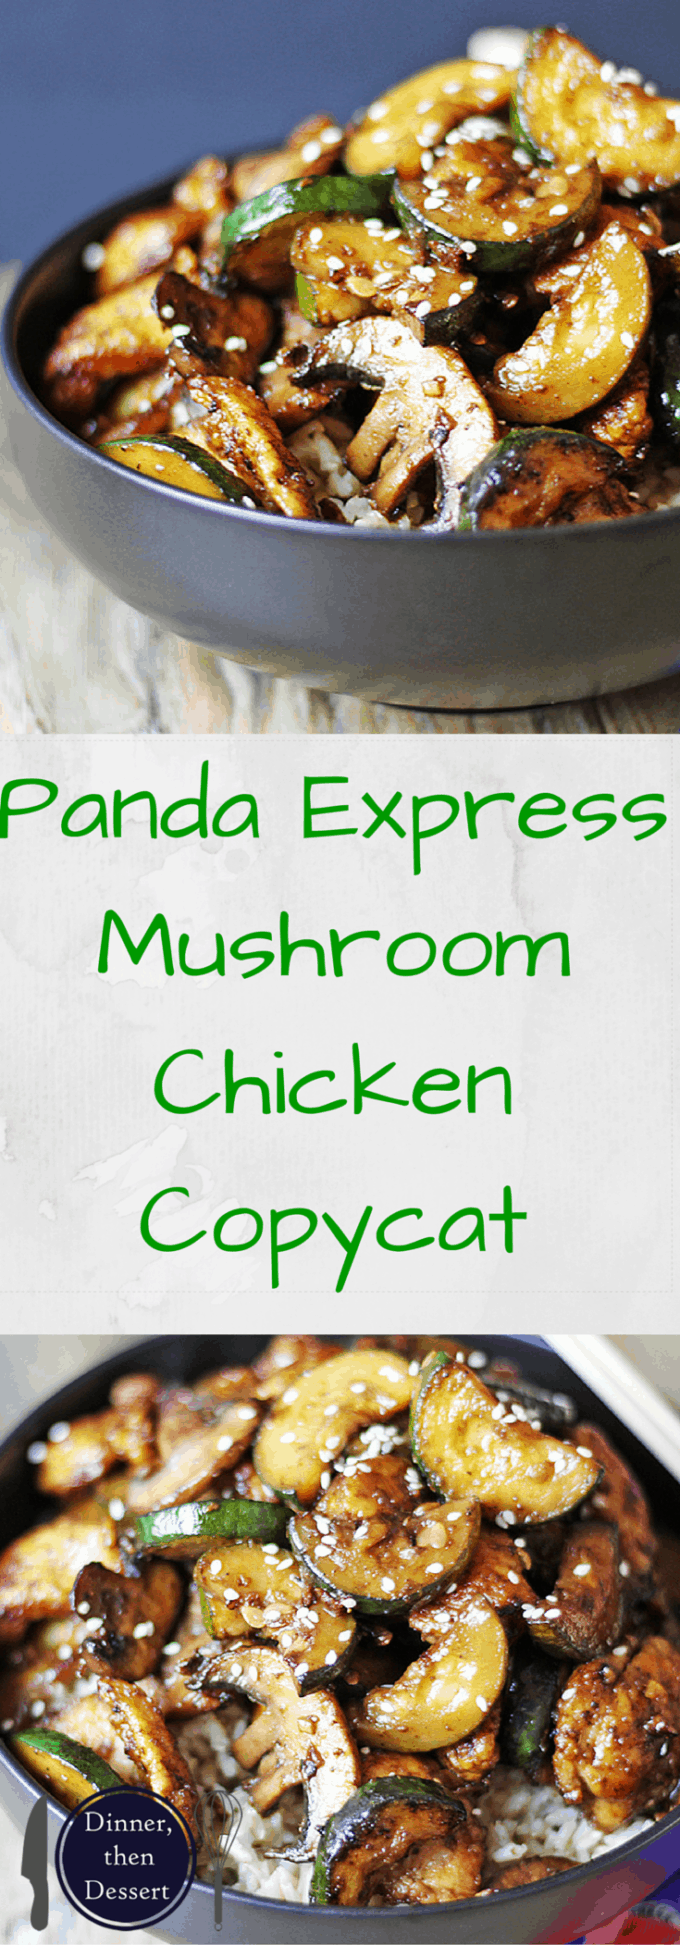 Panda Express Zucchini And Mushroom Chicken In Just 20 Minutes! You'll Be  Sitting